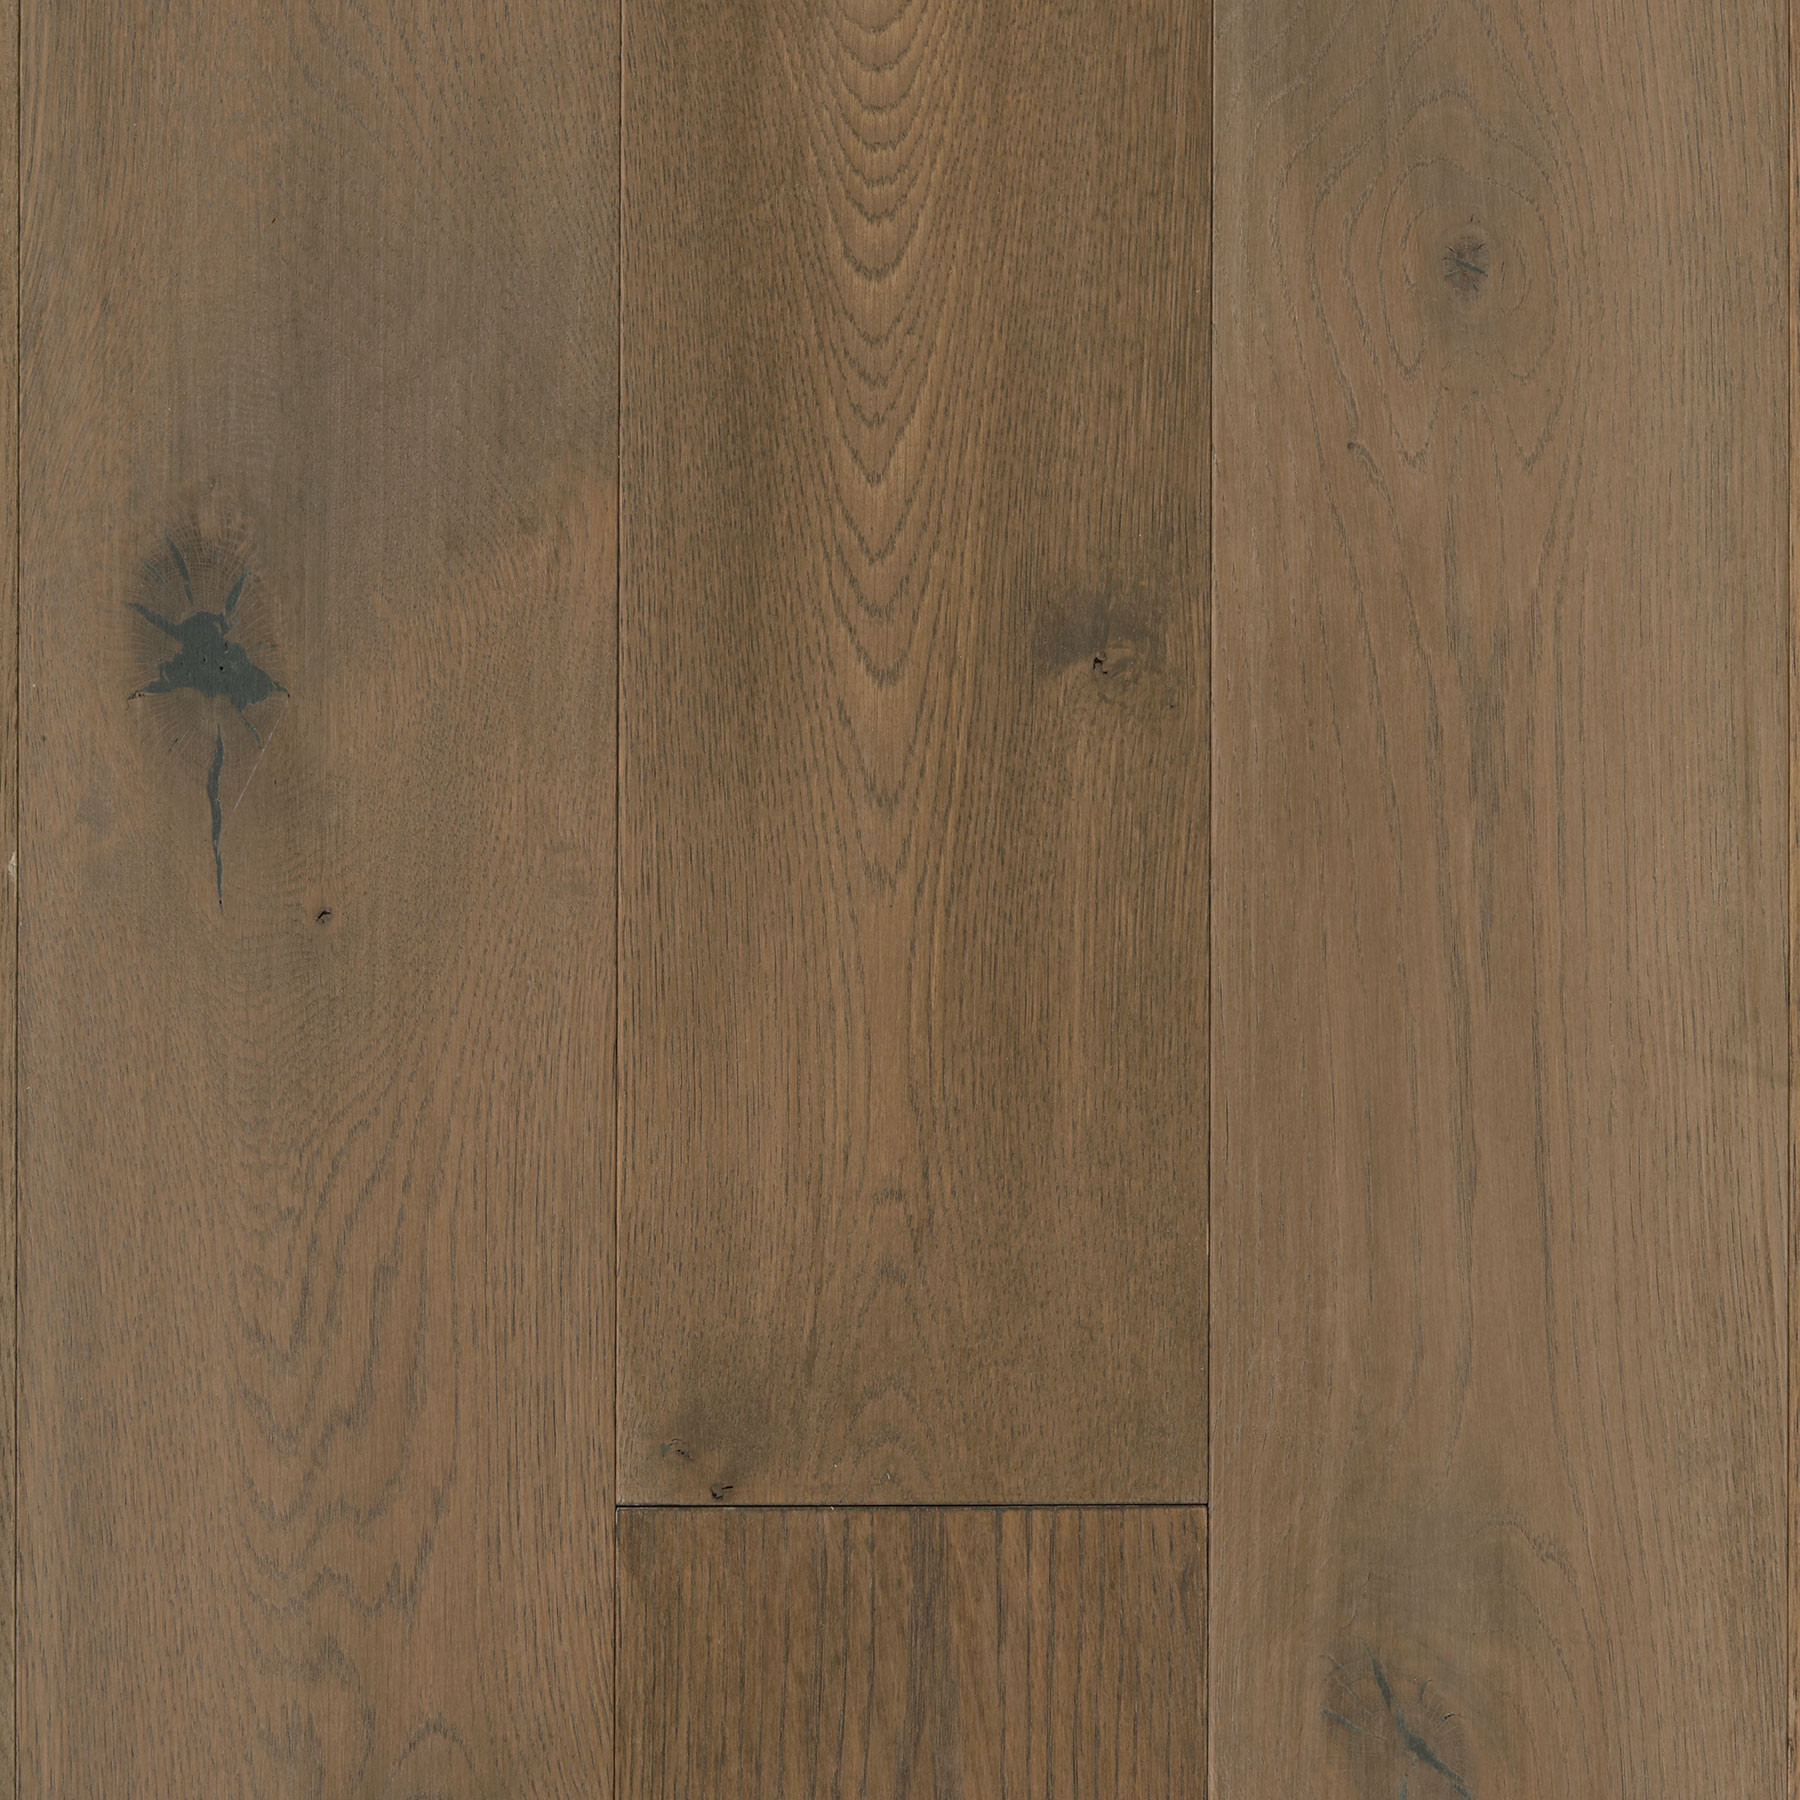 hardwood floor color options of oiled domestic vintage etx surfaces throughout oiled domestic